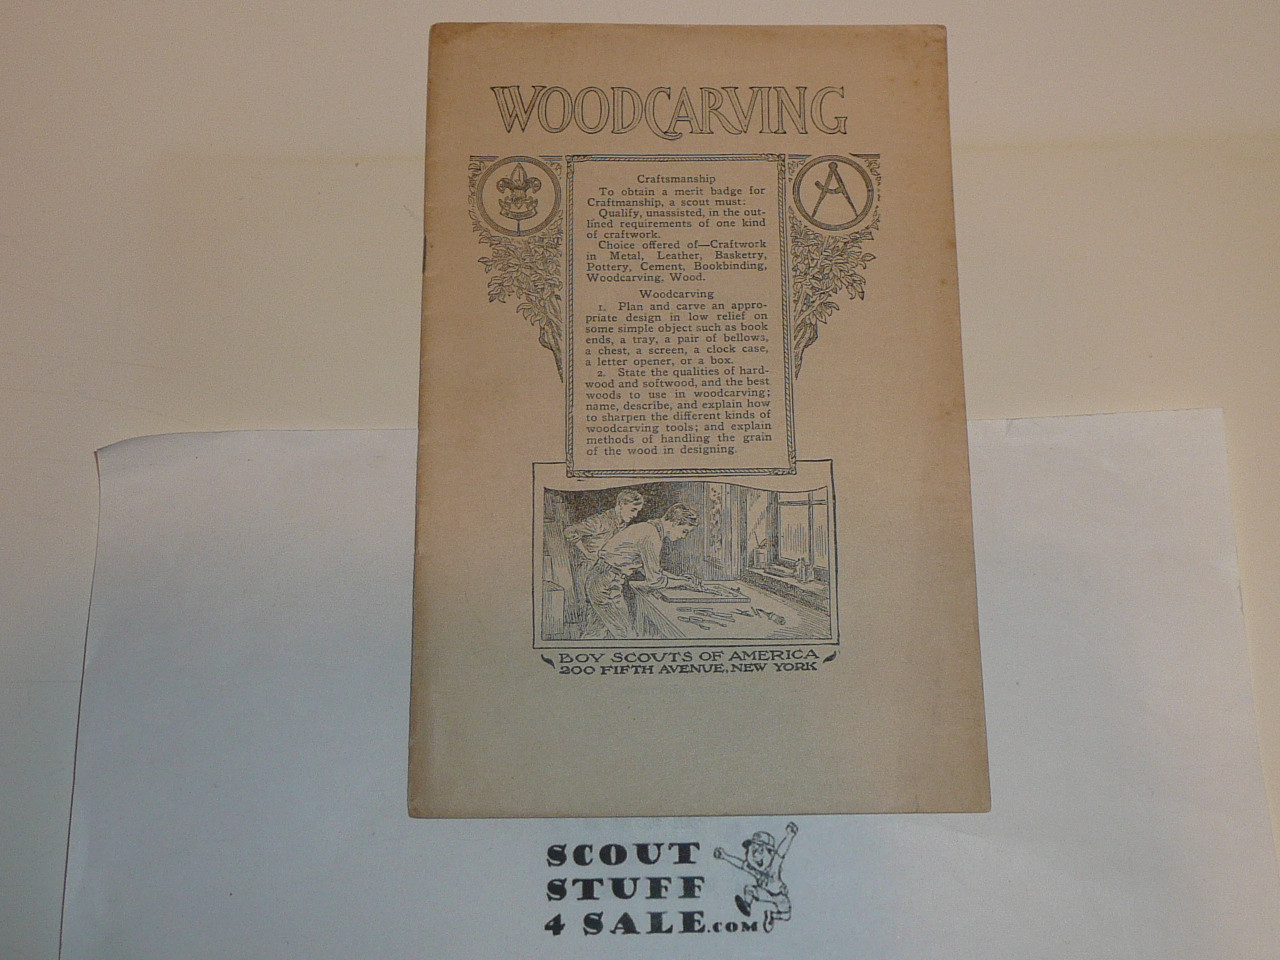 Woodcarving Merit Badge Pamphlet, Type 2, White Cover, 1920 Printing, MINT condition